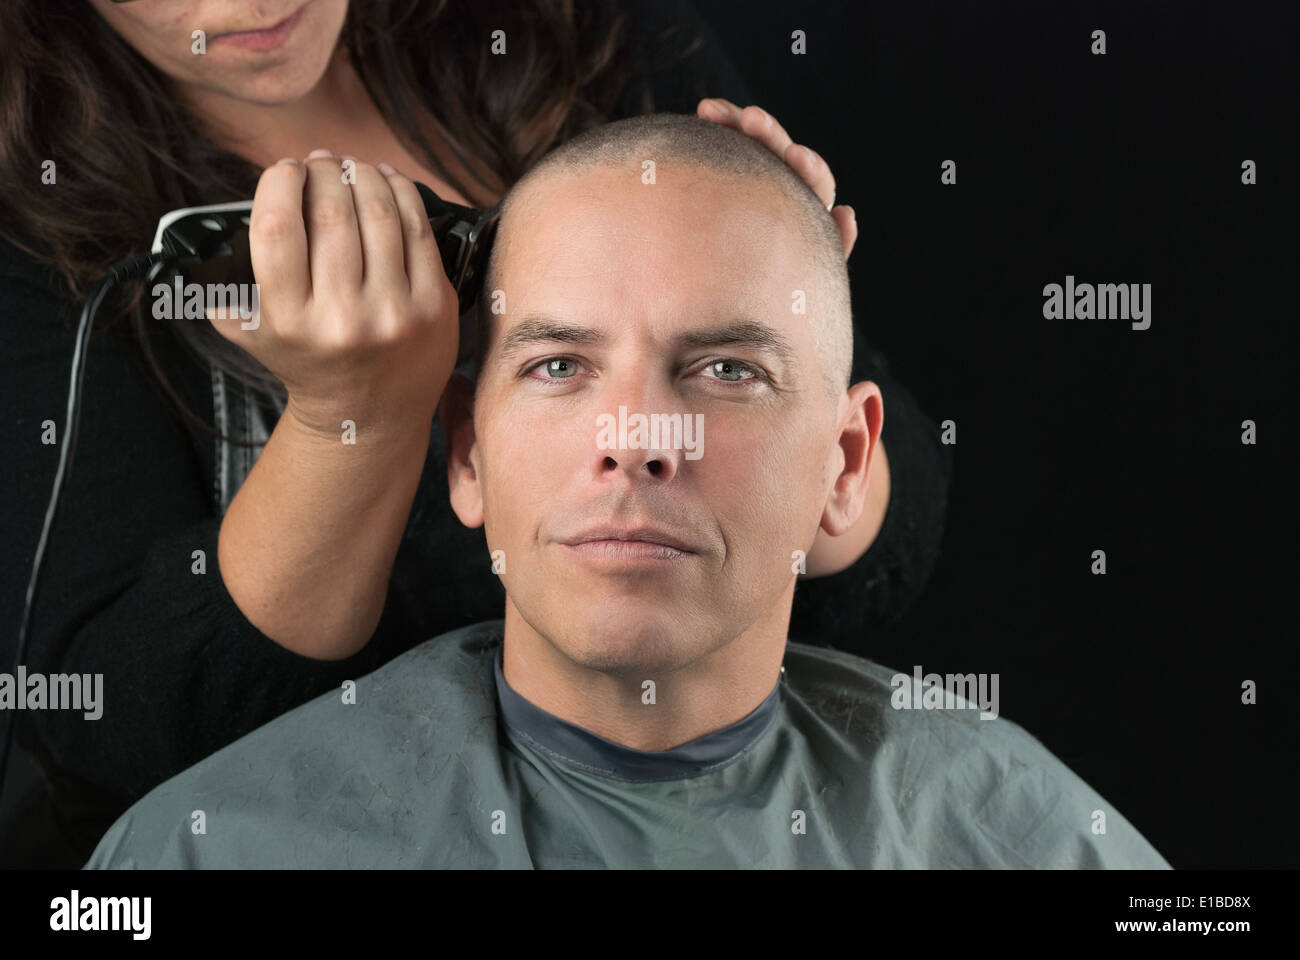 Close-up of a hair stylist using clippers to shave her Clients head. - Stock Image